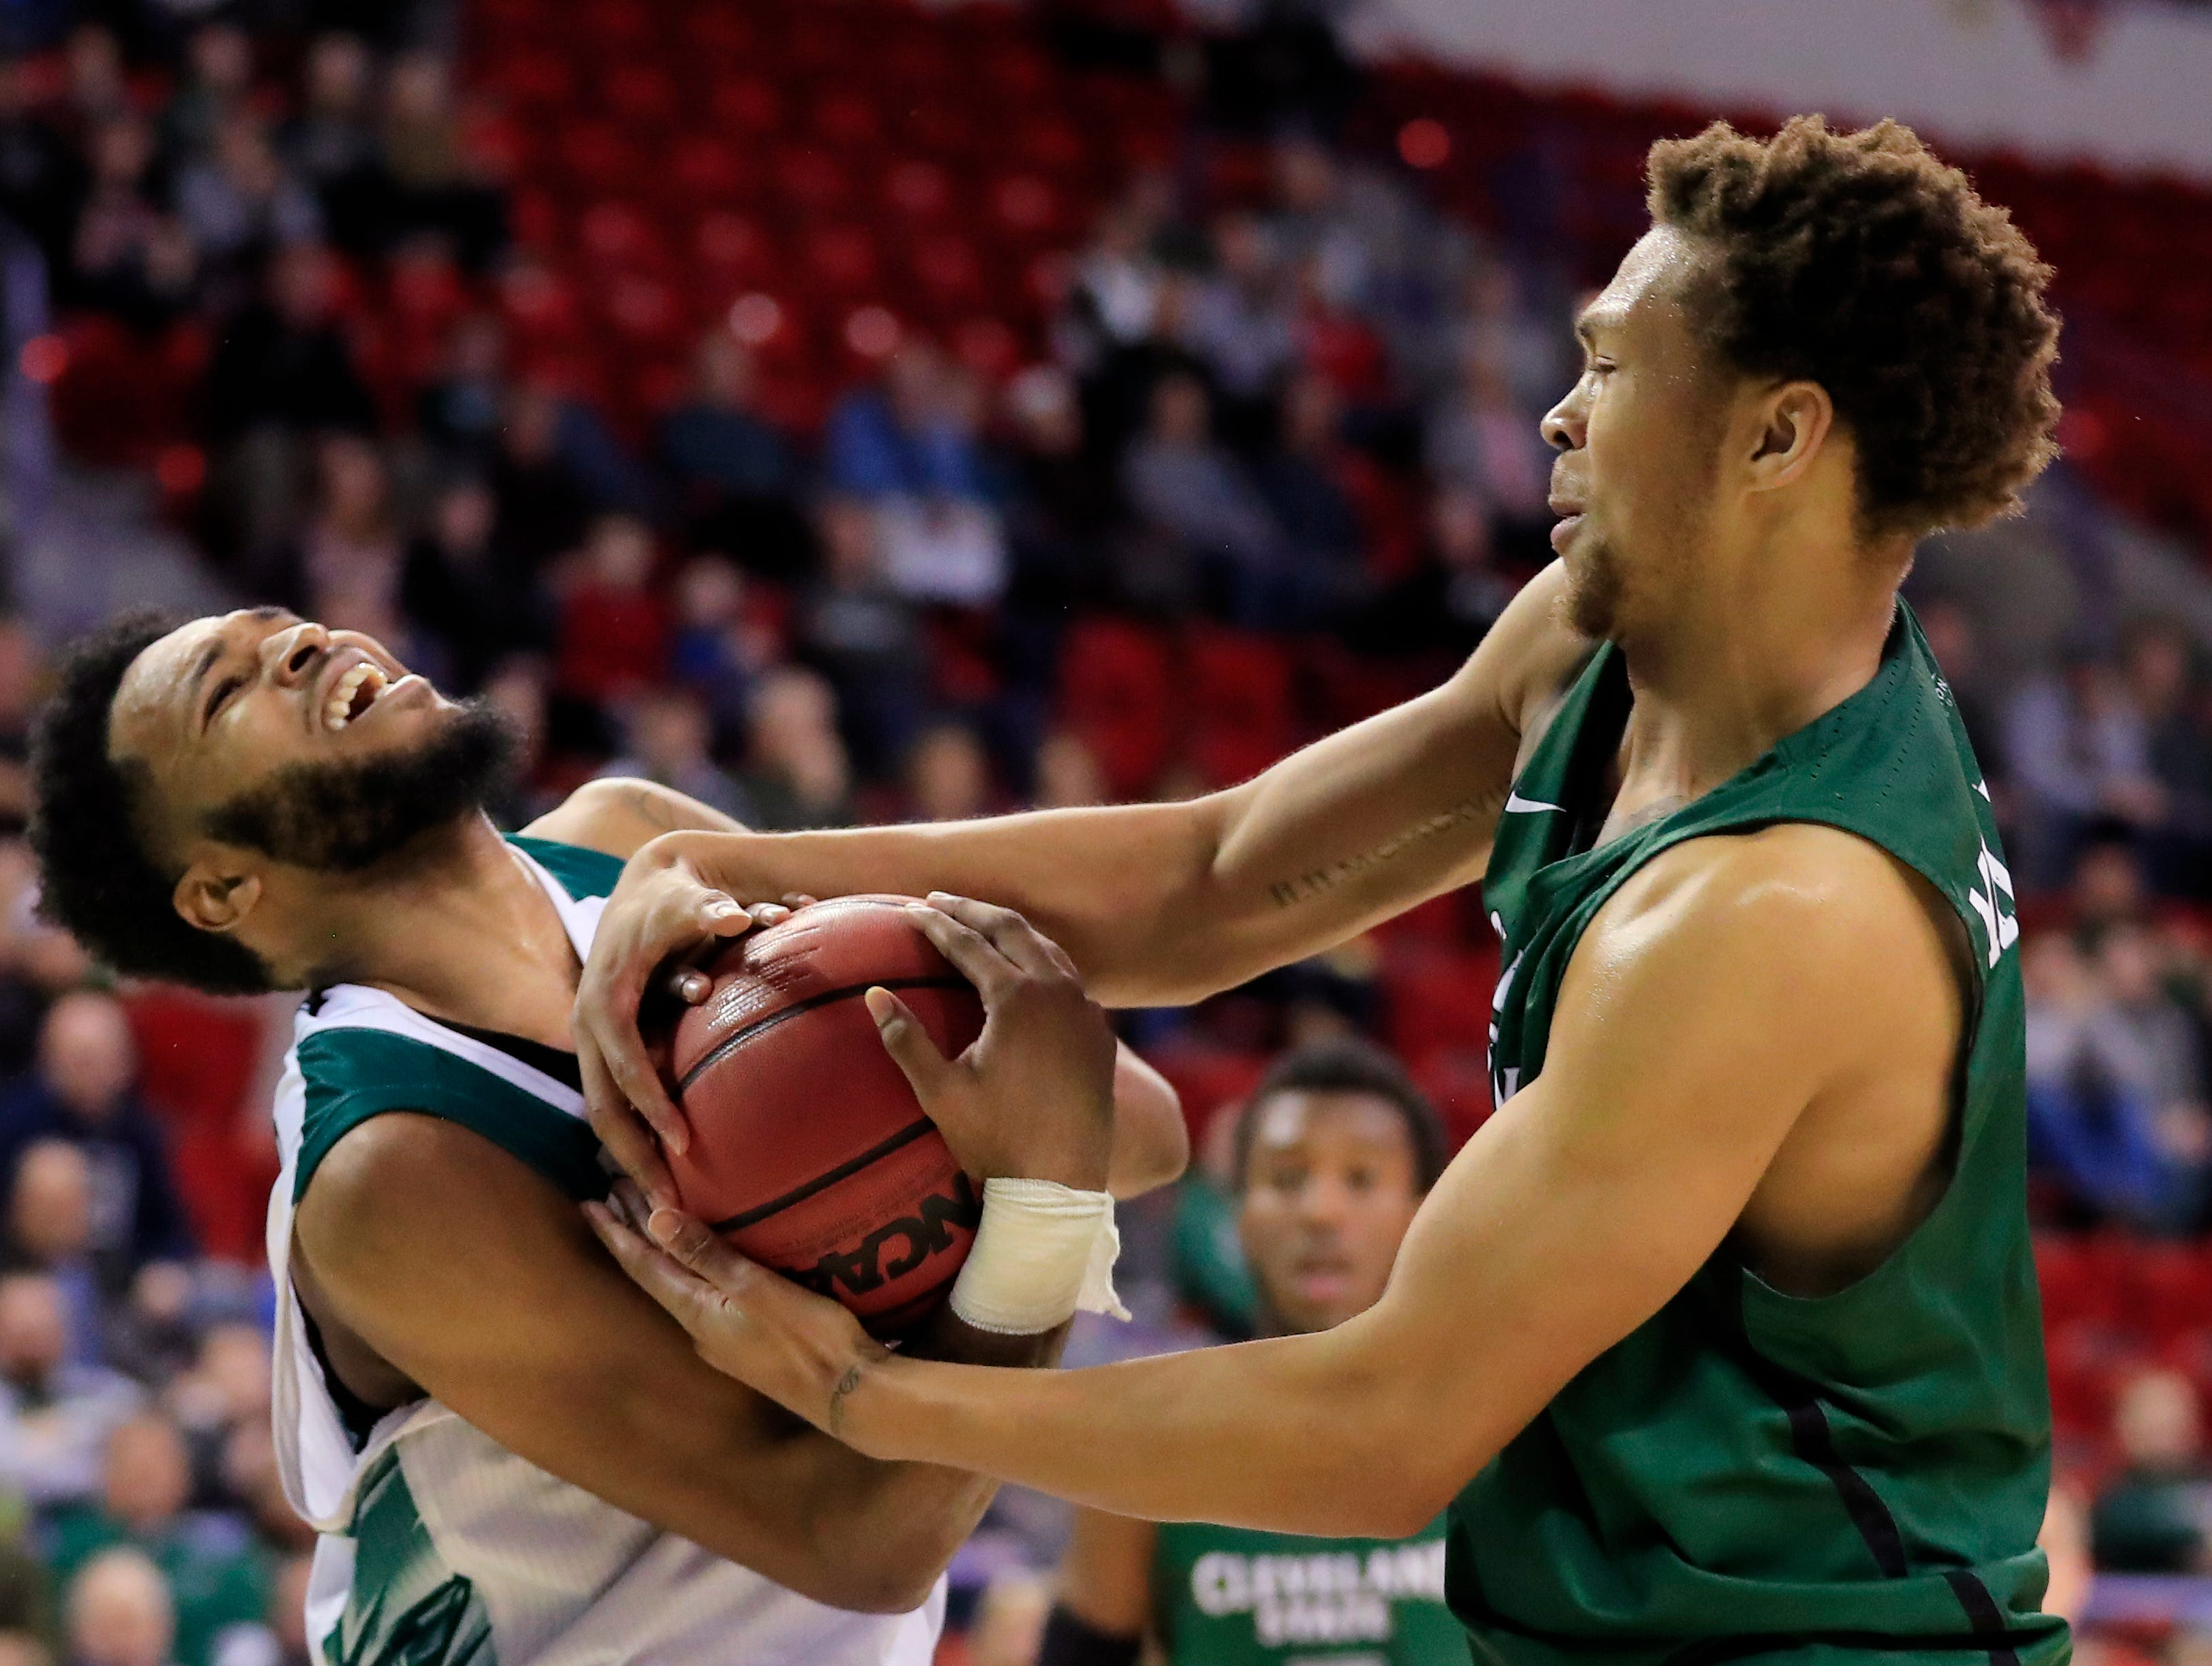 Green Bay Phoenix guard JayQuan McCloud (11) and Cleveland State Vikings forward Seth Millner (4) get tied up in a Horizon League basketball game at the Resch Center on Saturday, January 5, 2019 in Green Bay, Wis.